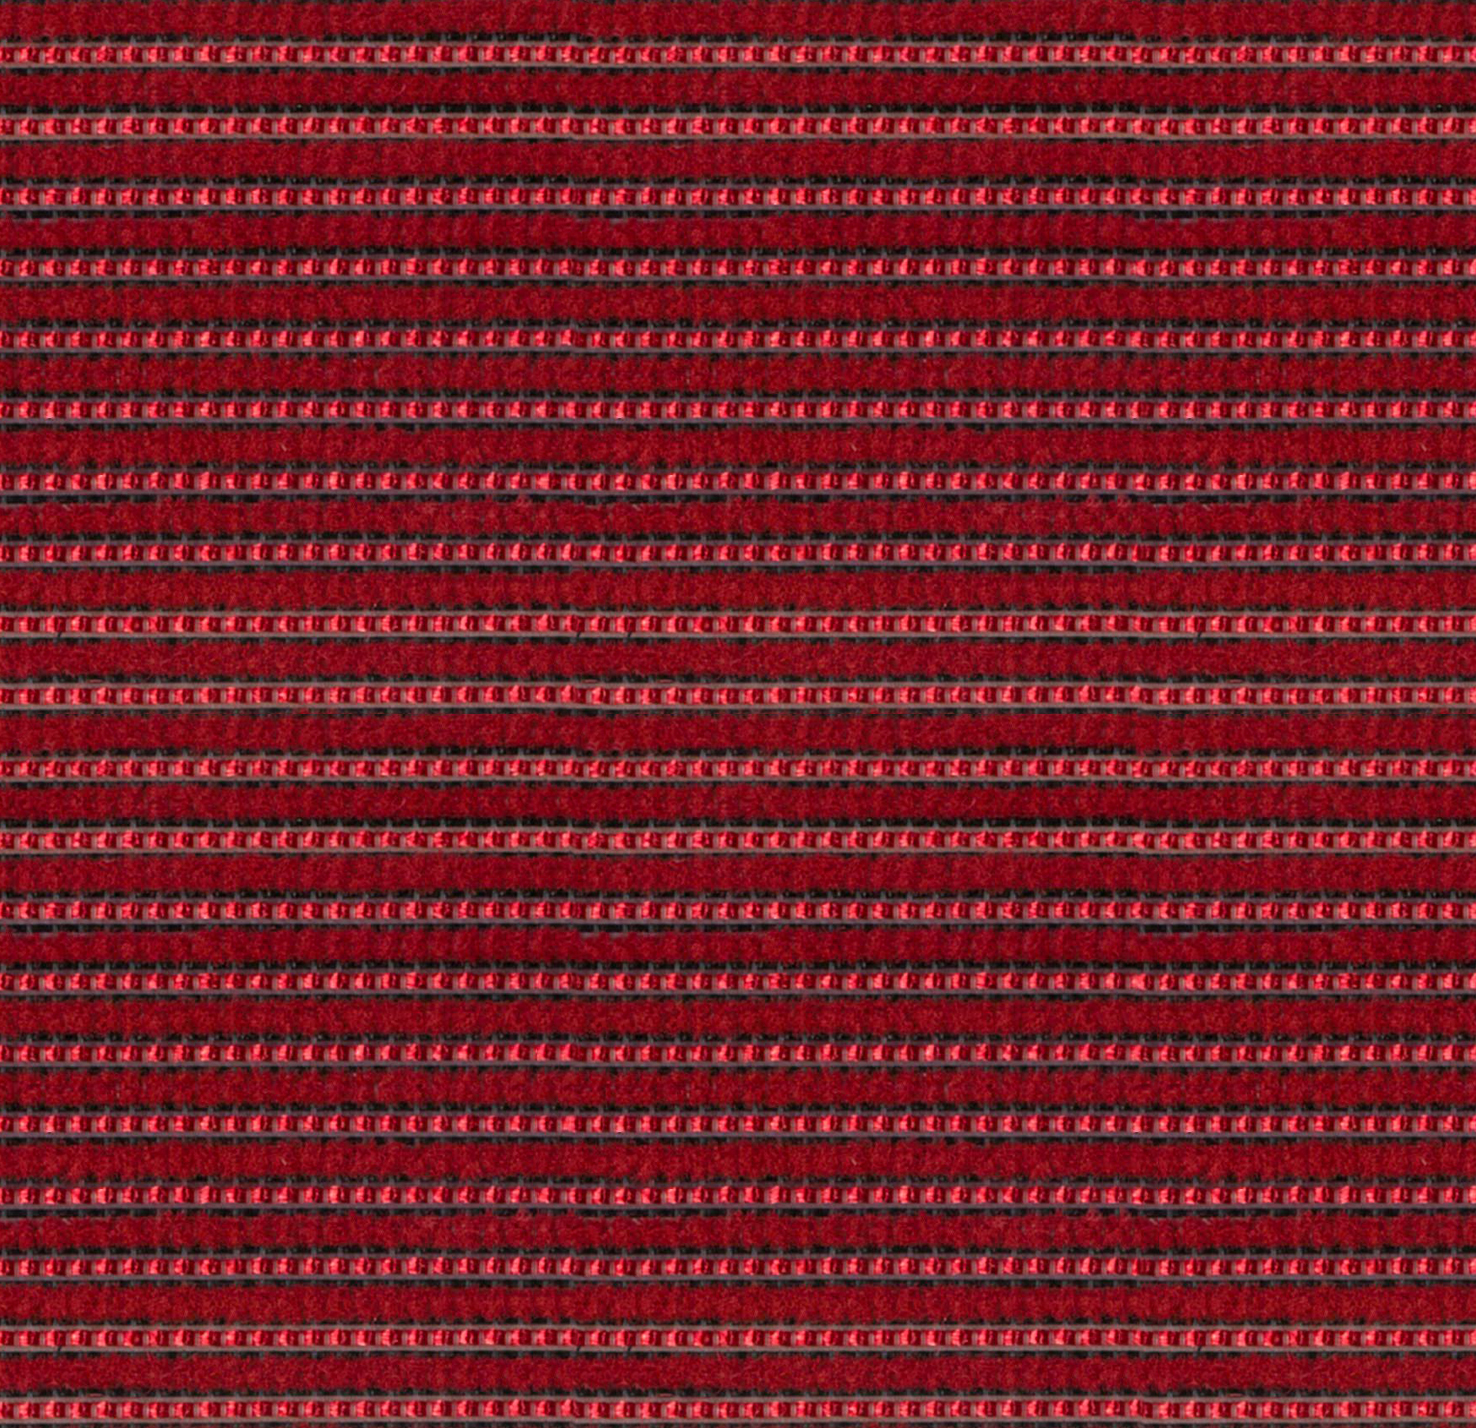 6346-62 Red